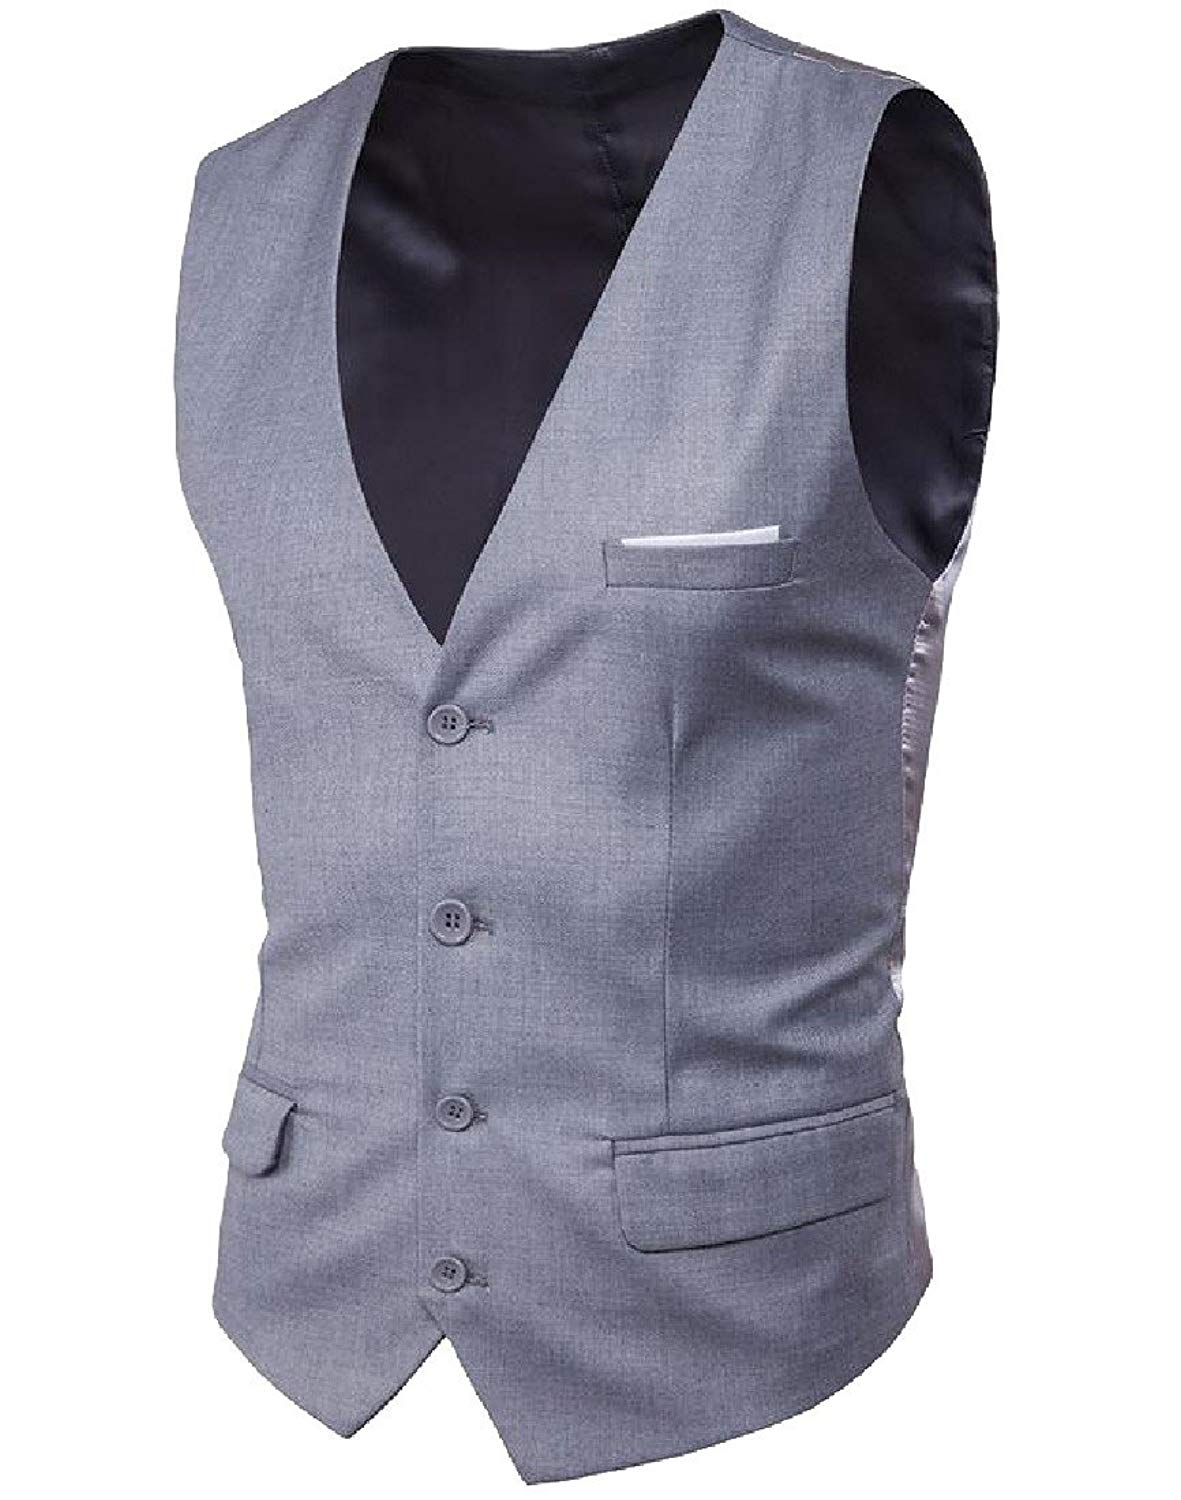 Coolred-Men Formal Button Tank Top Wild Business V-Neck Suits Vest